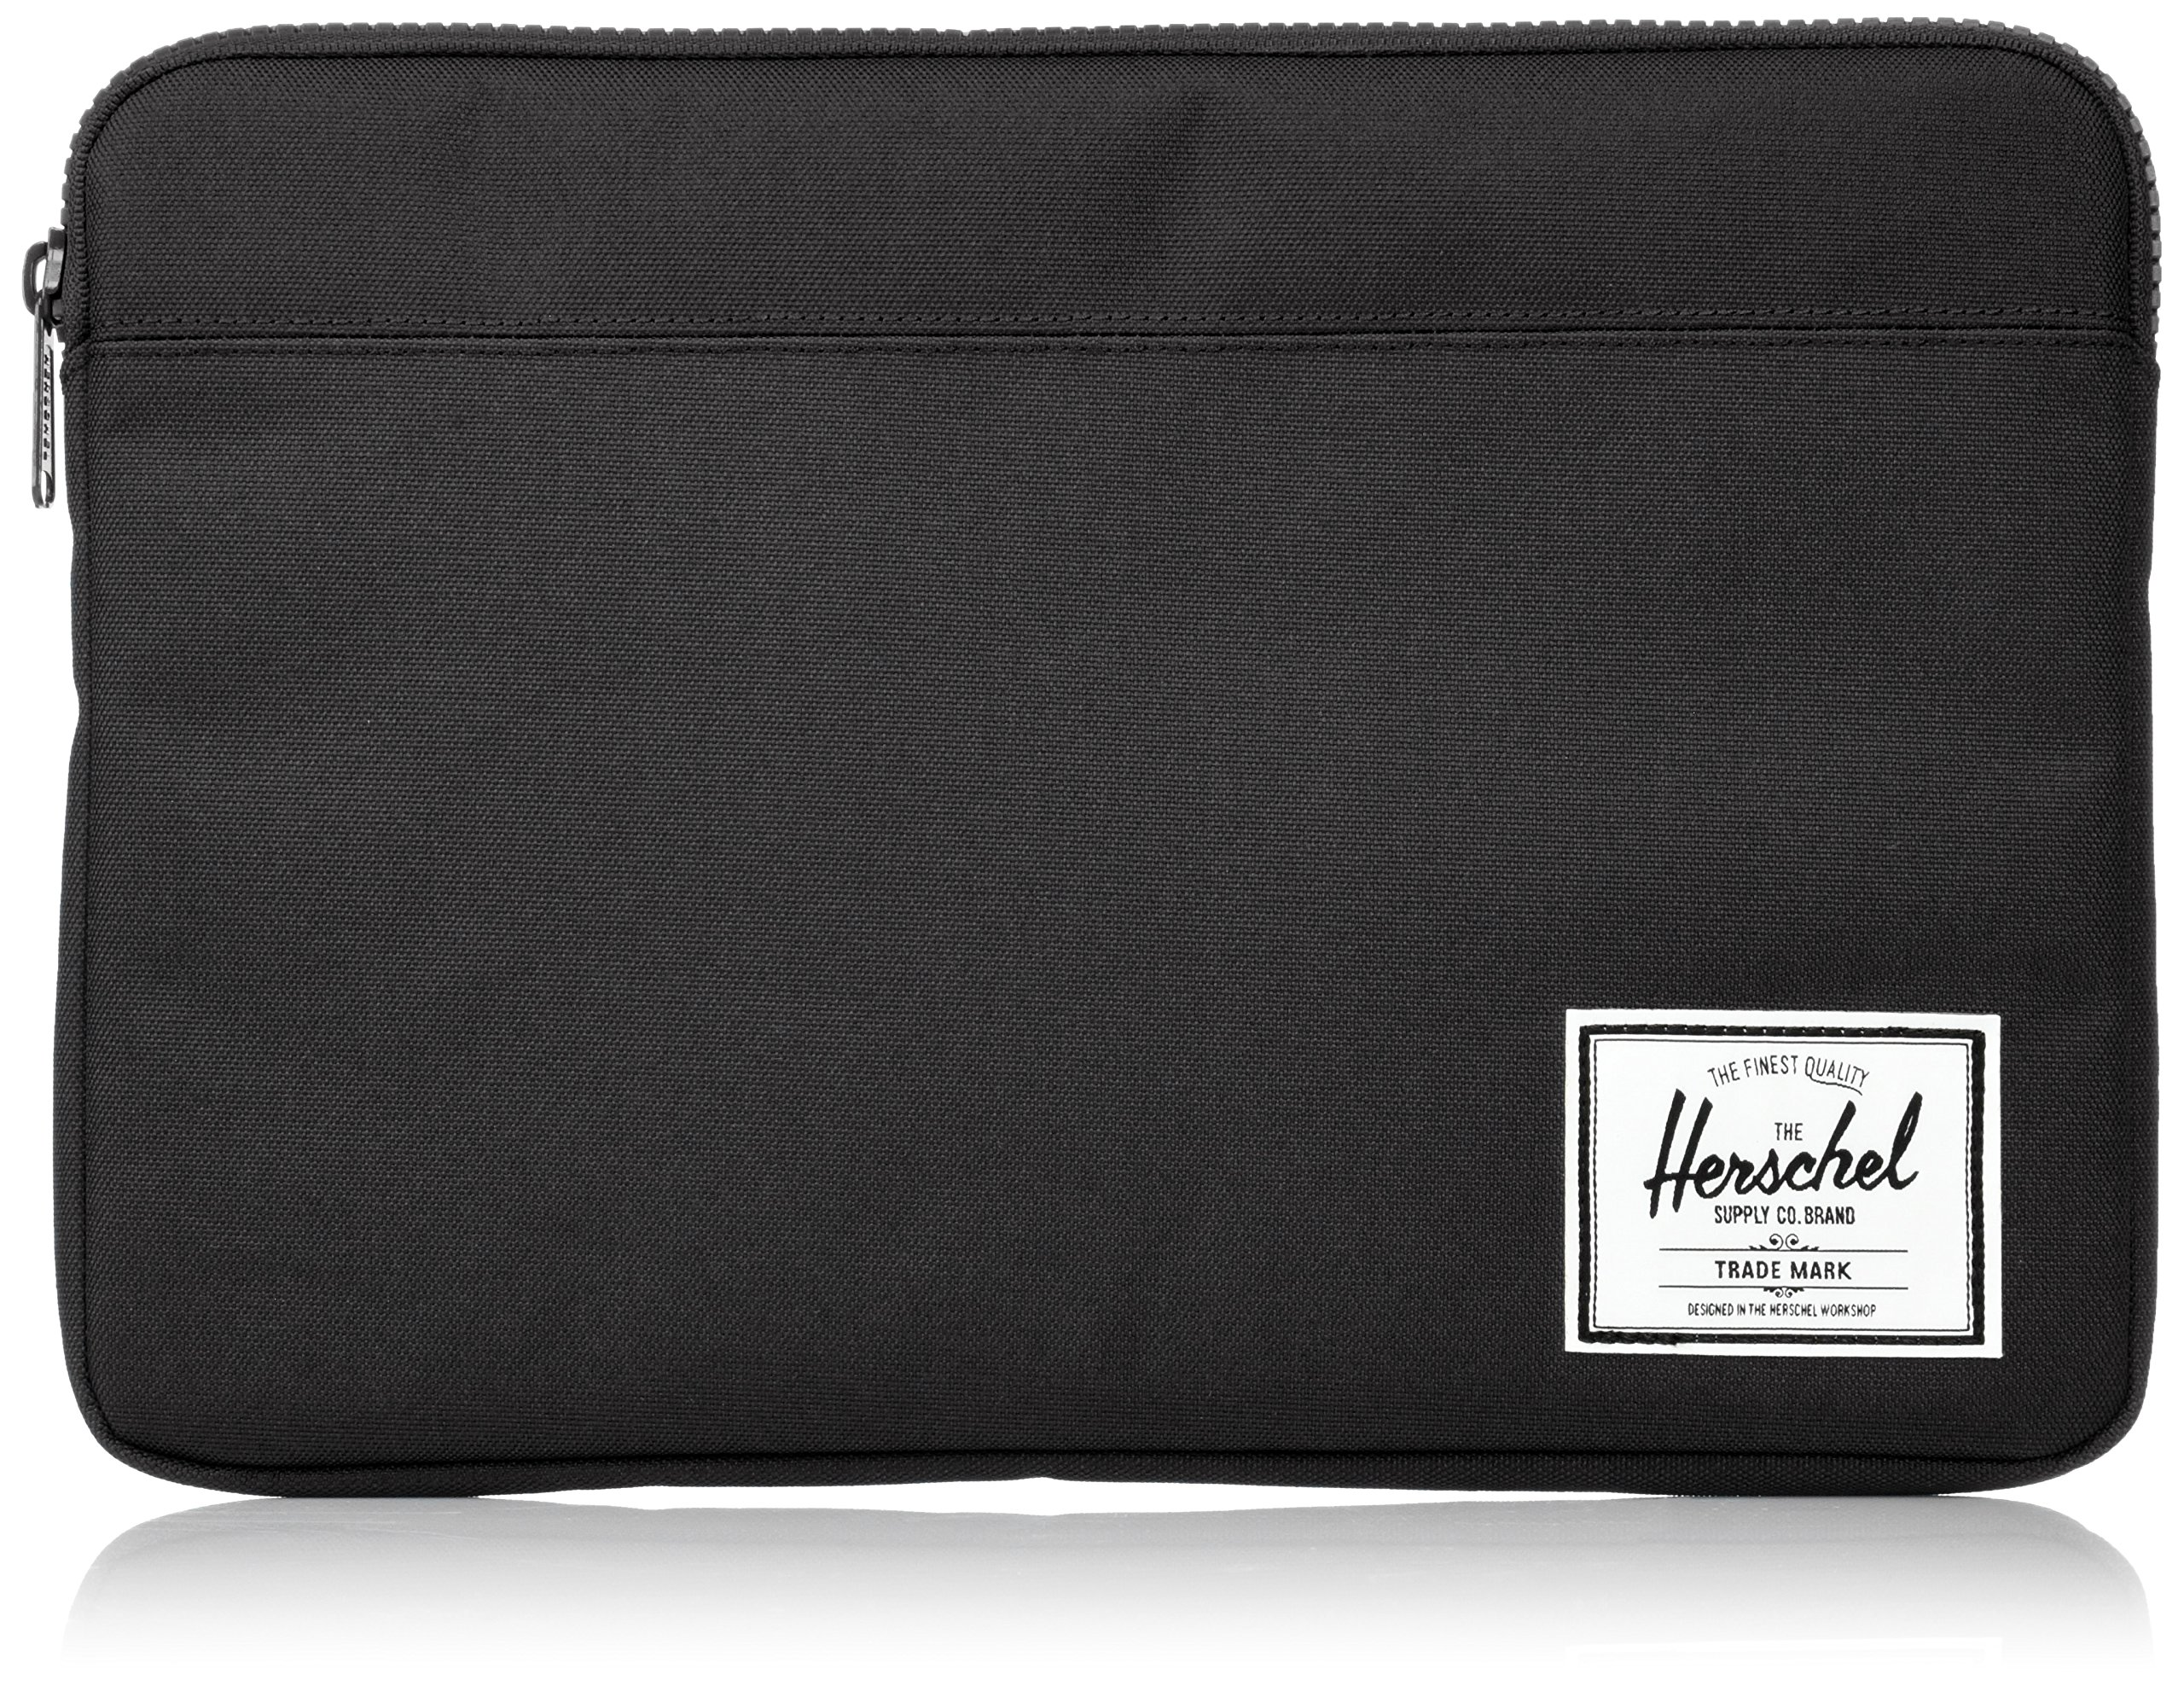 Herschel Supply Co. Unisex-Adult's Anchor Sleeve for 13 Inch MacBook, black, One Size